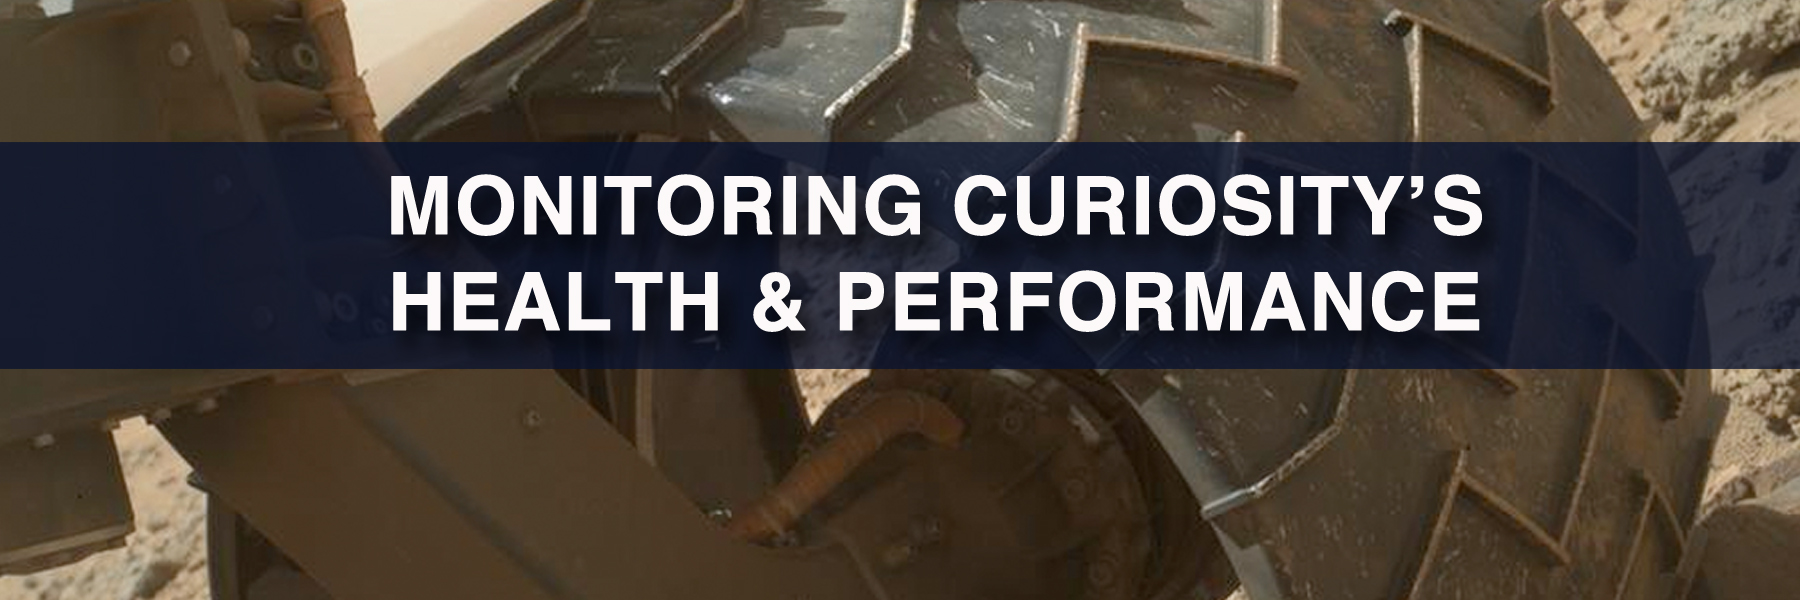 MONITORING CURIOSITY'S HEALTH & PERFORMANCE